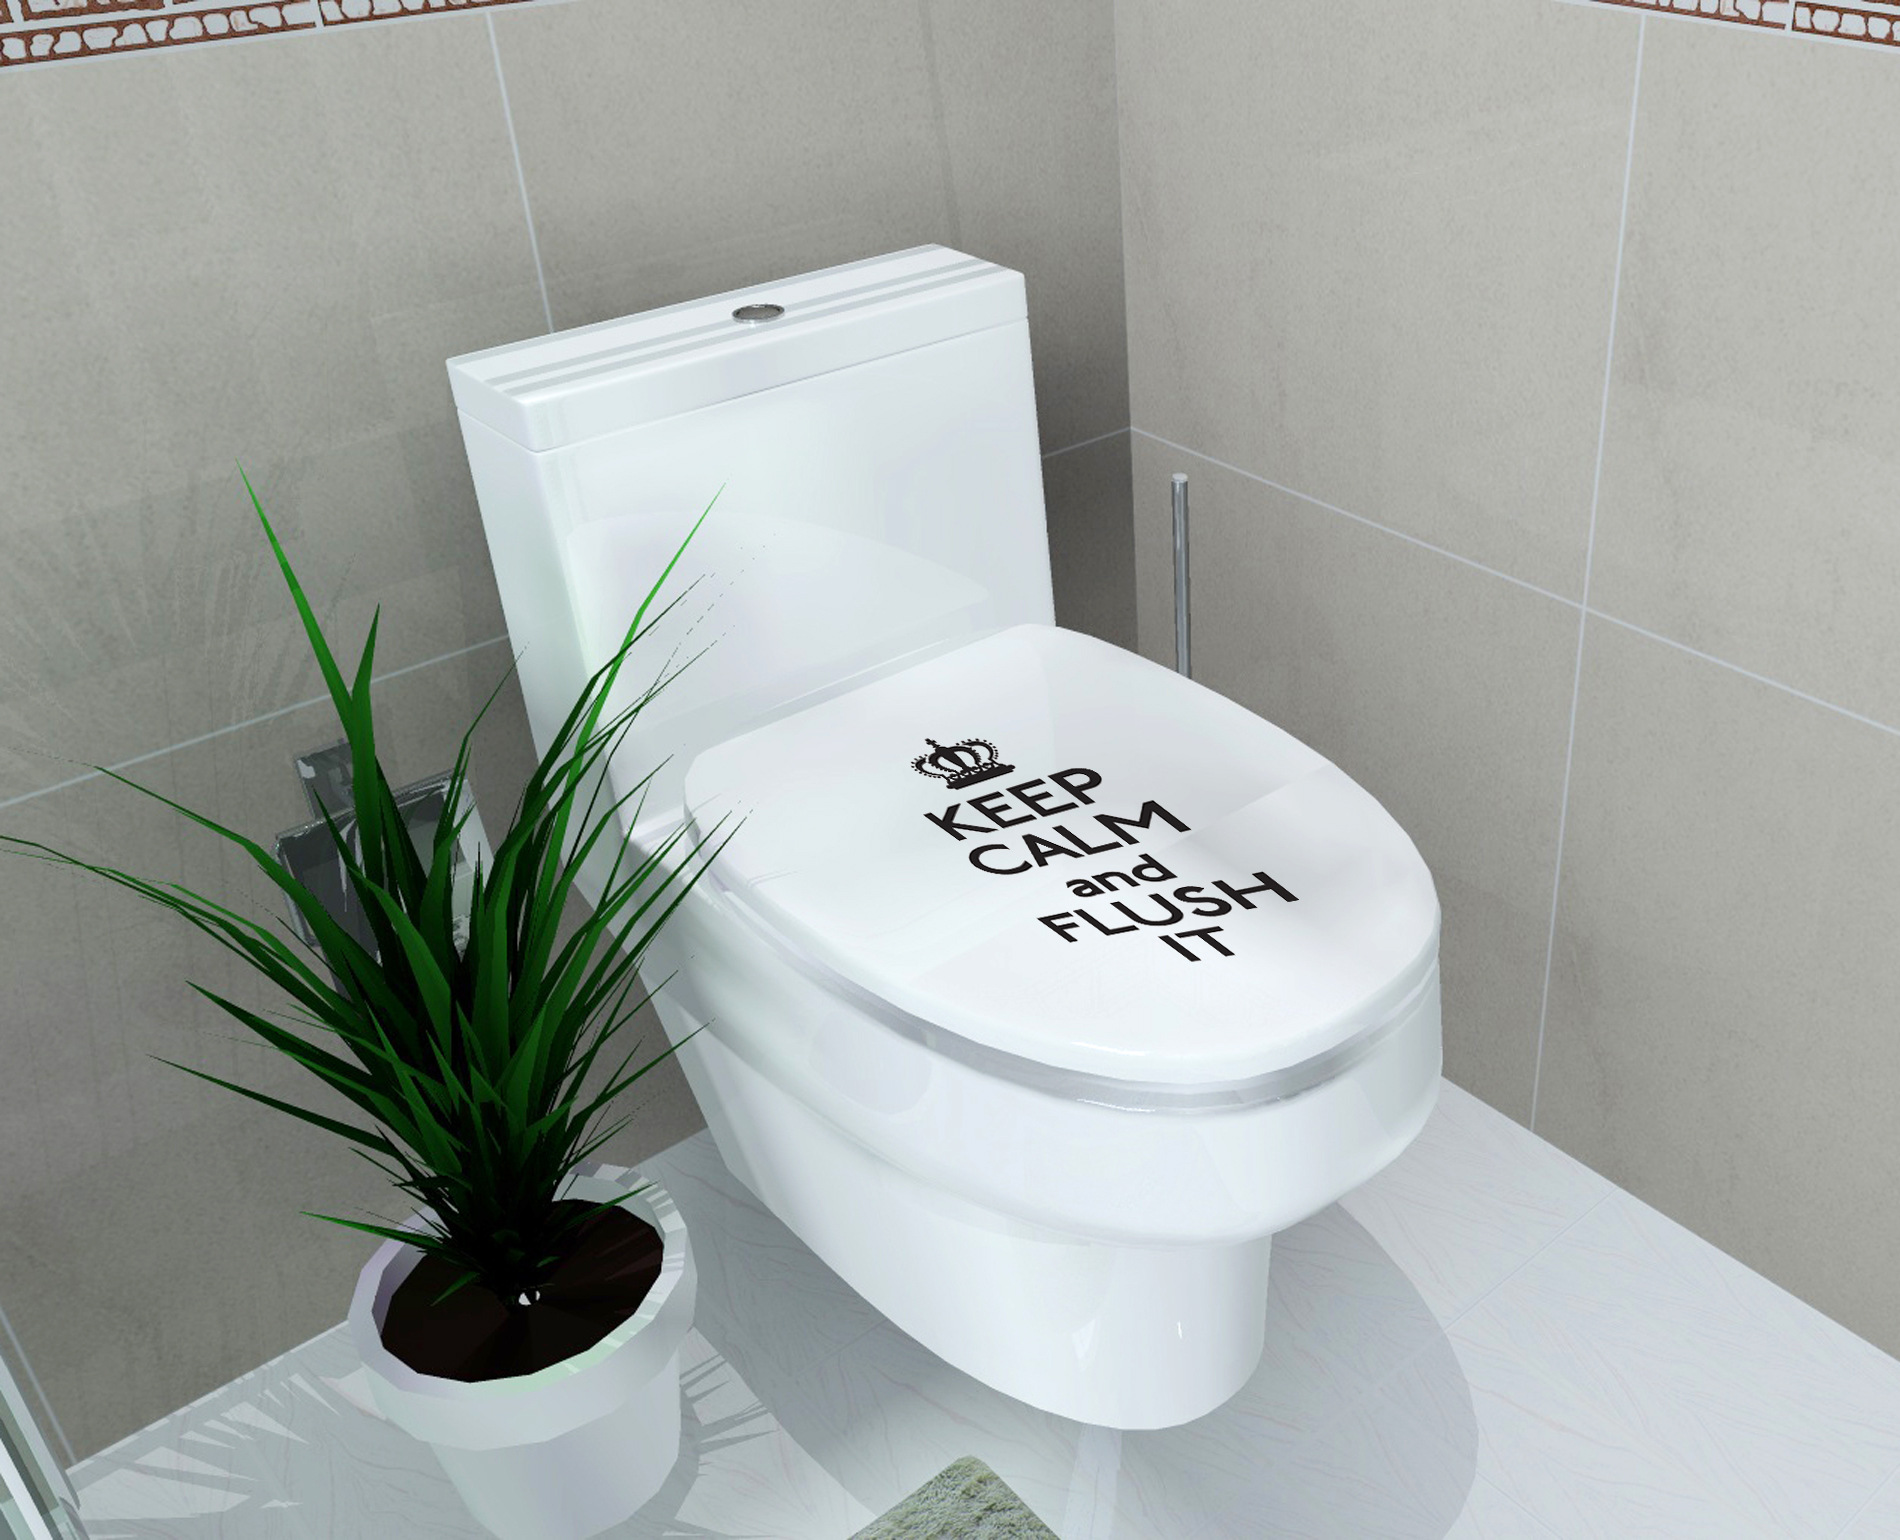 Bathroom wall decor stickers - Waterproof Diy Keep Calm And Flush It Vinyl Toilet Wall Stickers Quotes Letter Bathroom Decoration Wall